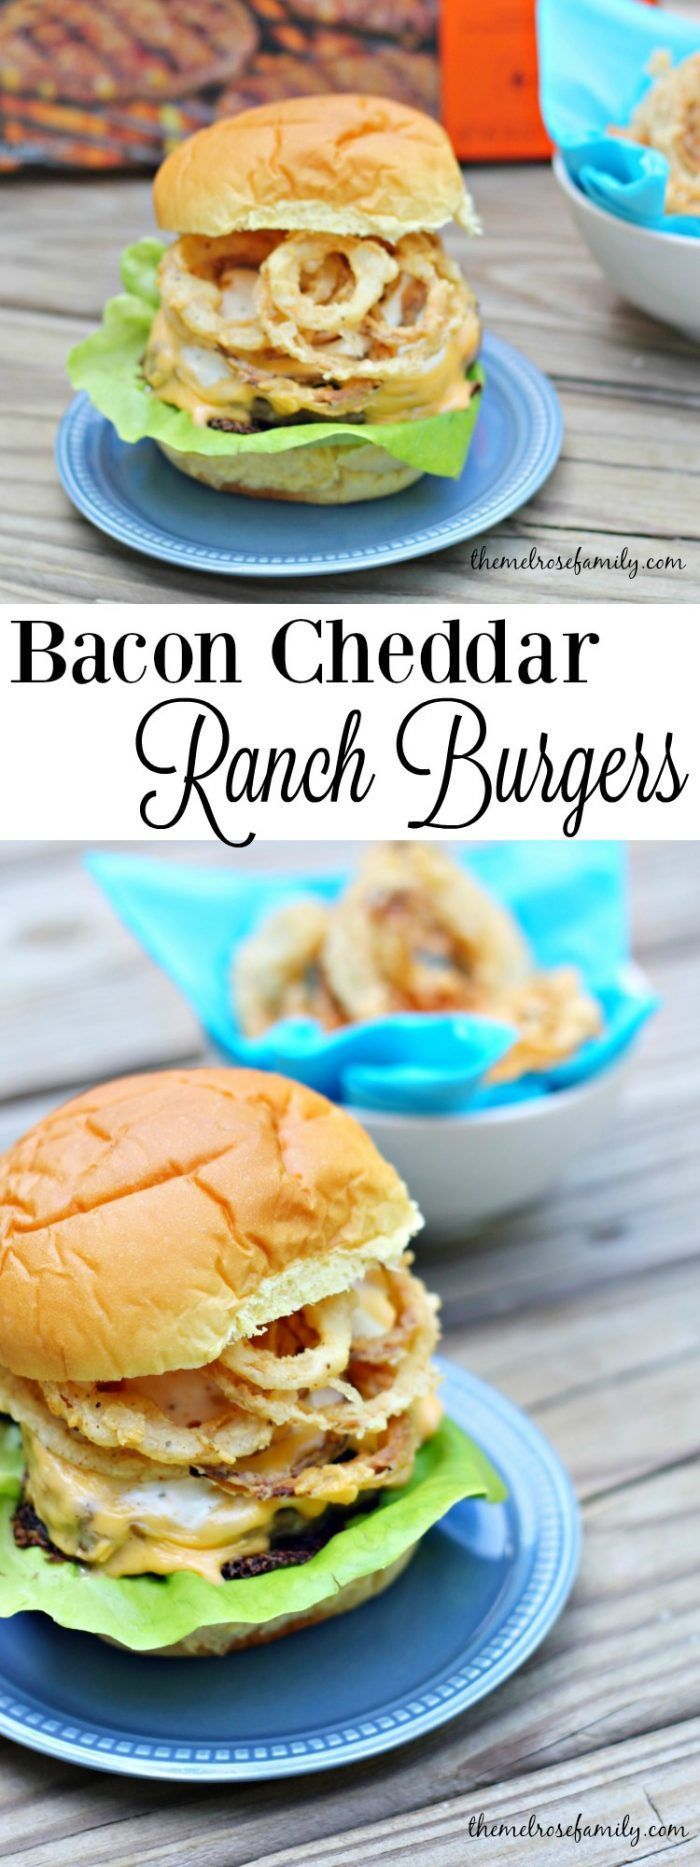 Need the perfect burger for your next barbecue? These Bacon Cheddar Ranch Burgers with Onion Strings are just what a crowd ordered.